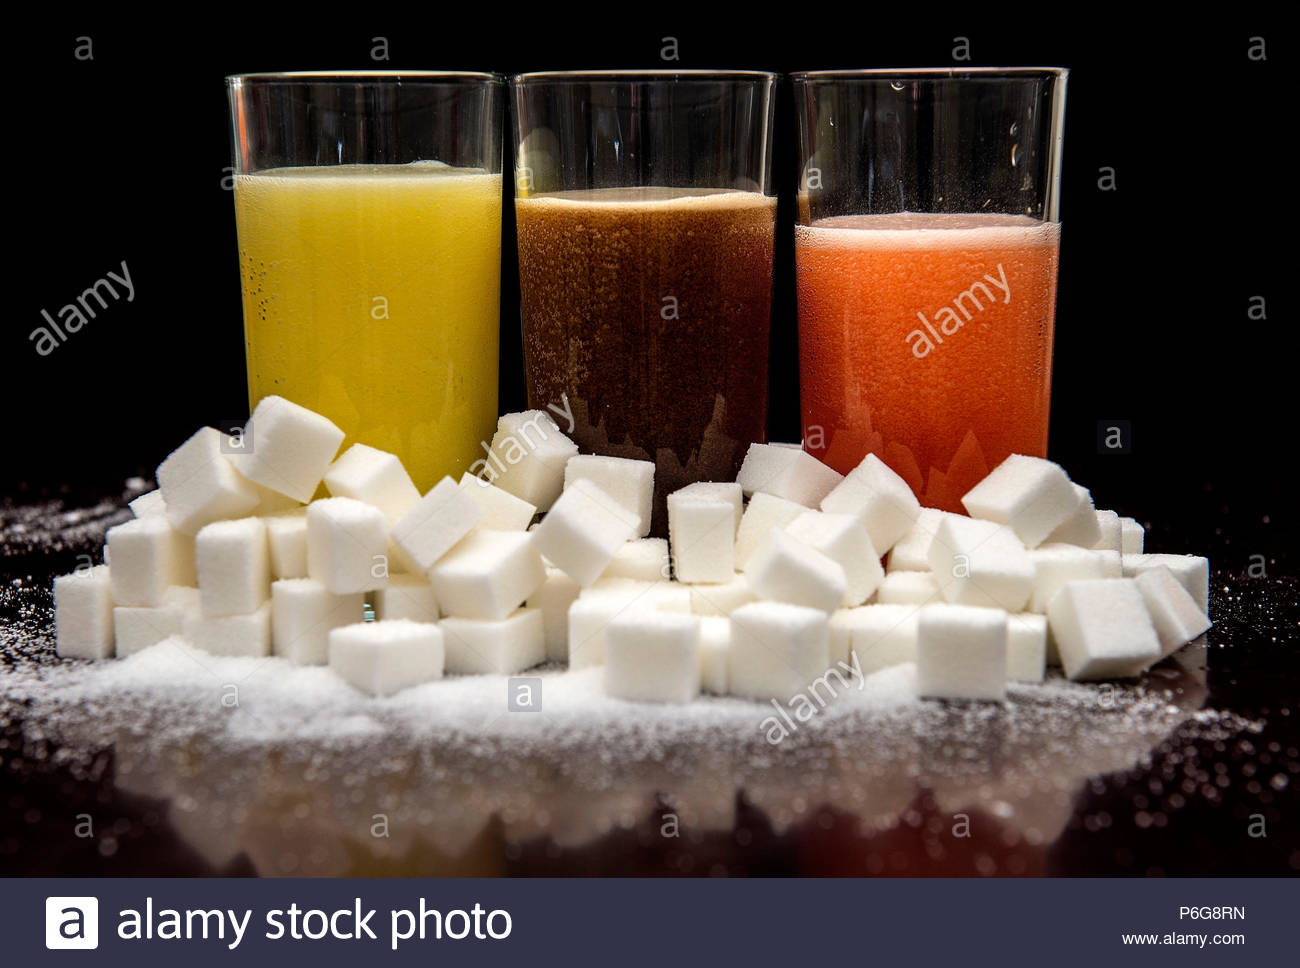 File photo dated 15/12/17 of soft drinks surrounded by sugar cubes. Ten million teaspoons of sugar have been removed from NHS canteens, shops and vending machines - the equivalent of 1.1 million cans of fizzy drink - after the majority of hospital trusts signed up to a voluntary scheme. Stock Photo